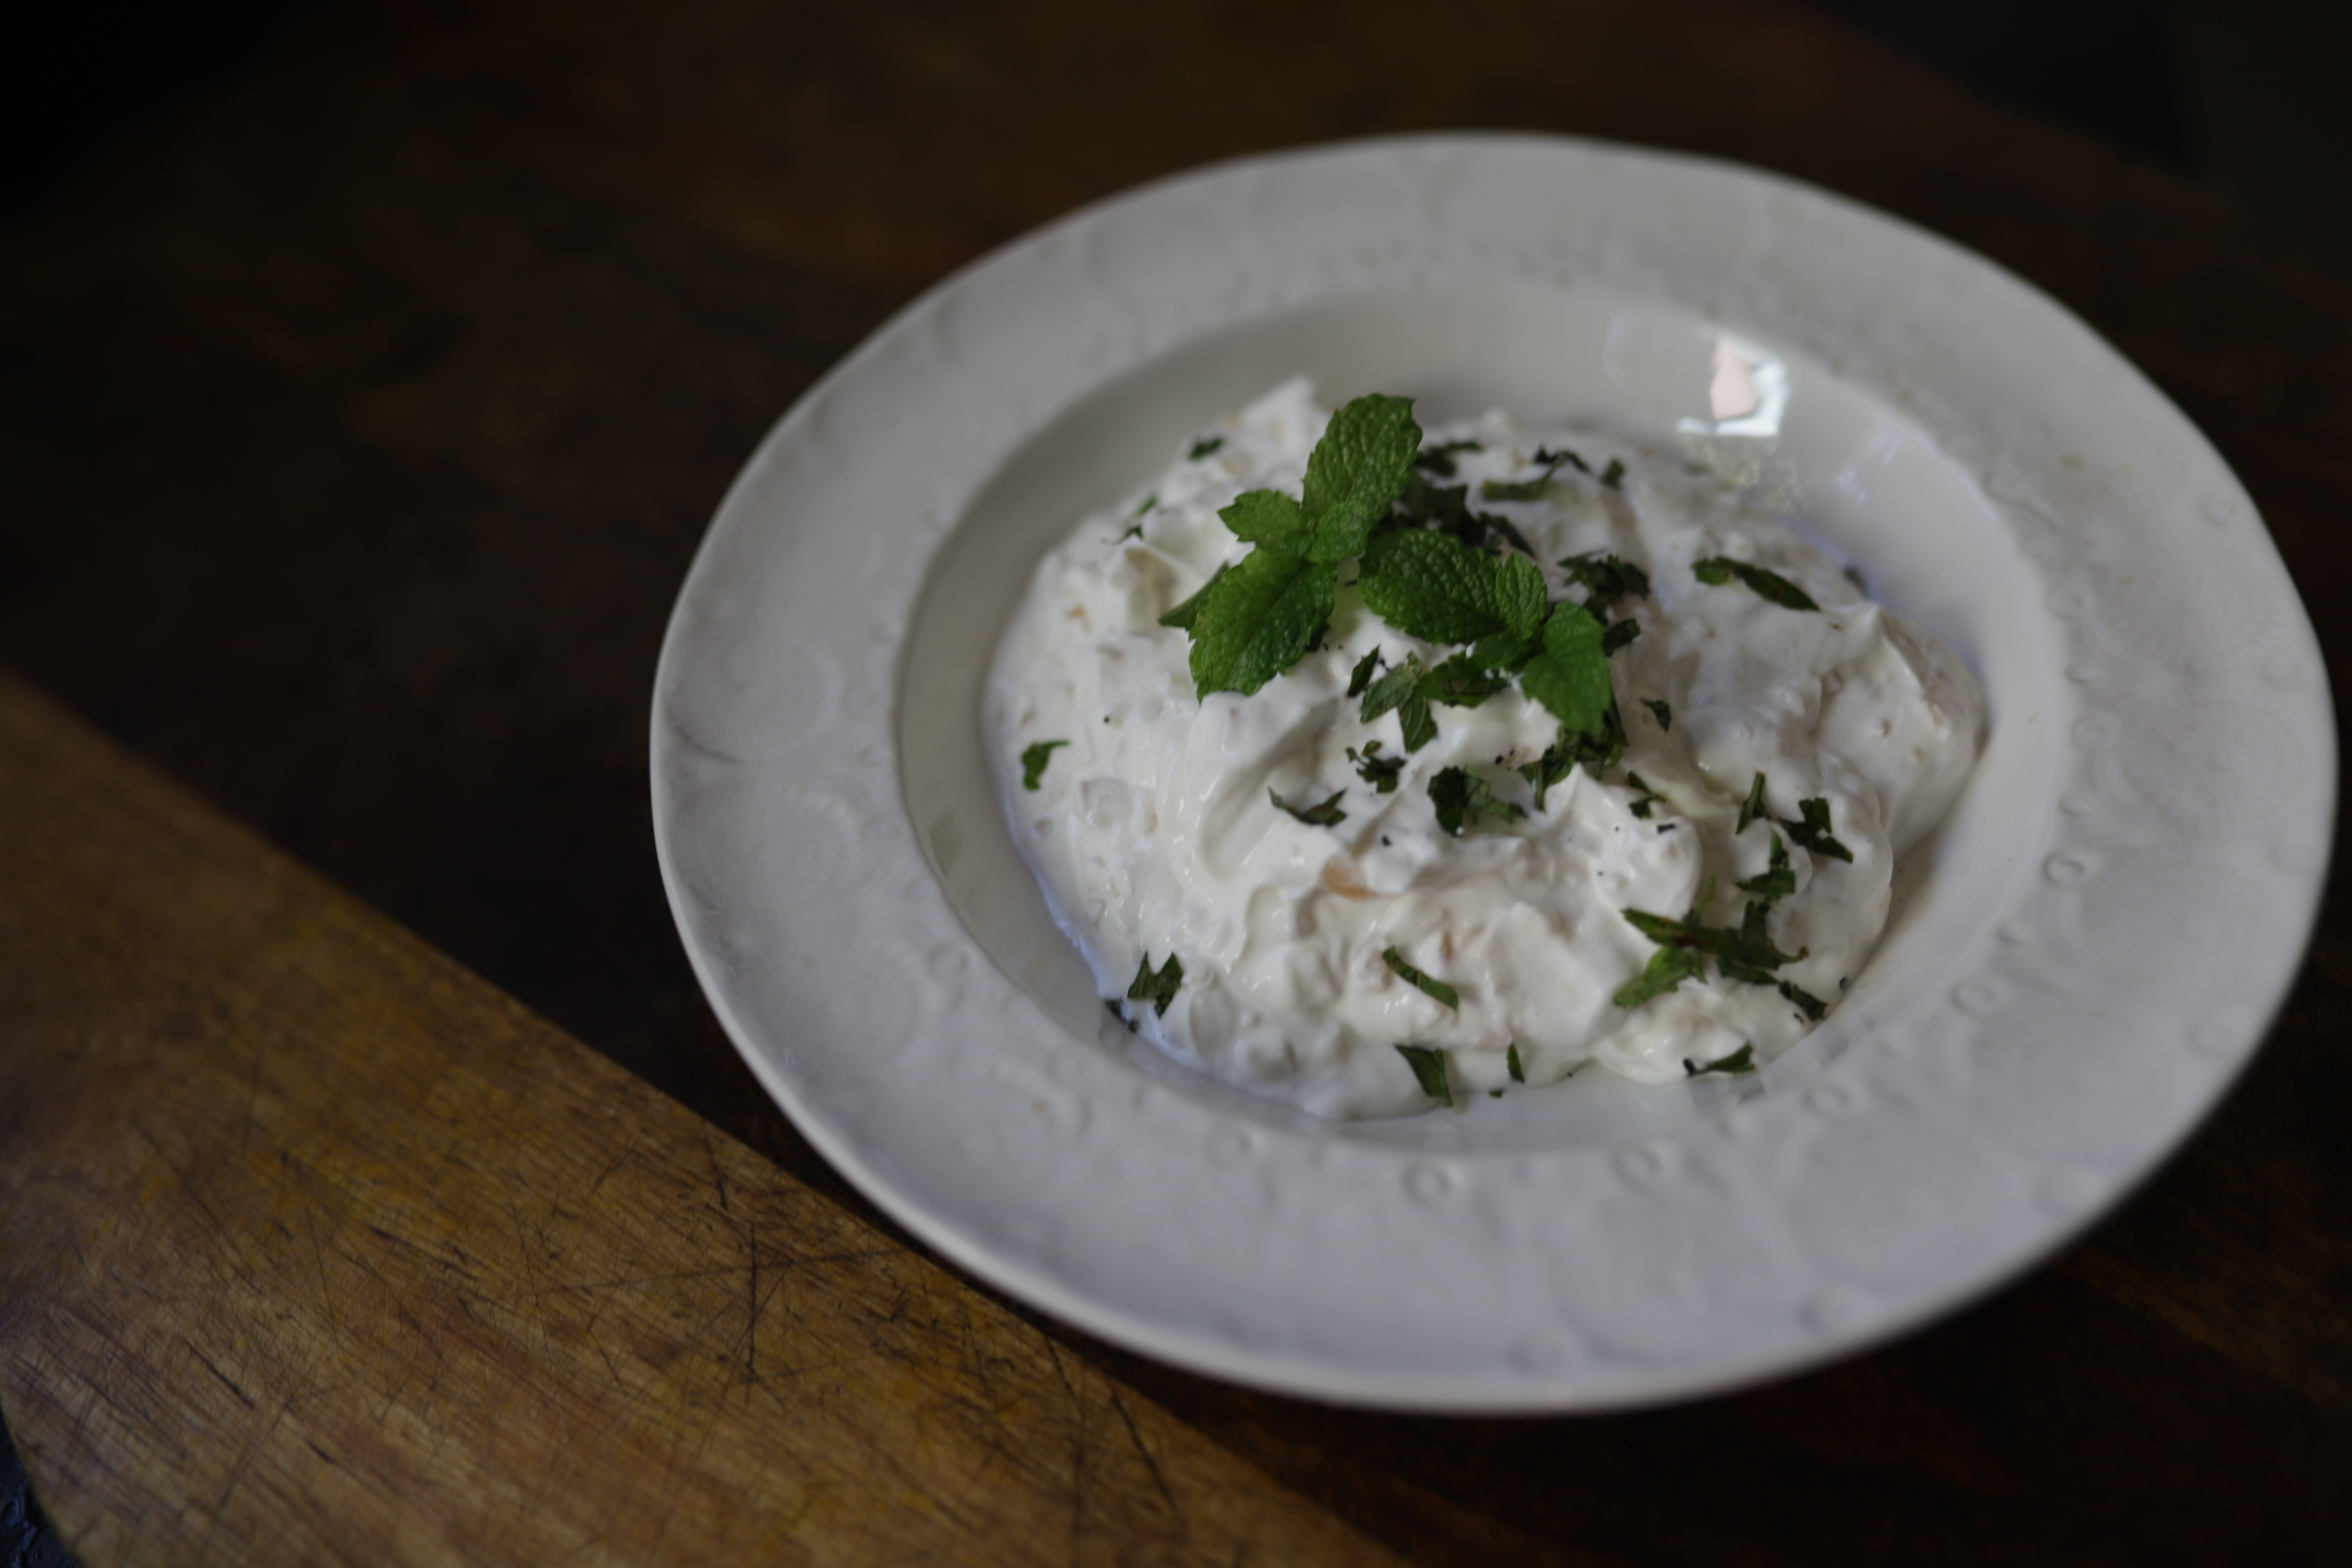 This yogurt dish can be eaten as a dip with nice warm lavash flatbread or veggies, and is especially good alongside barbecued chicken or a rich stew.